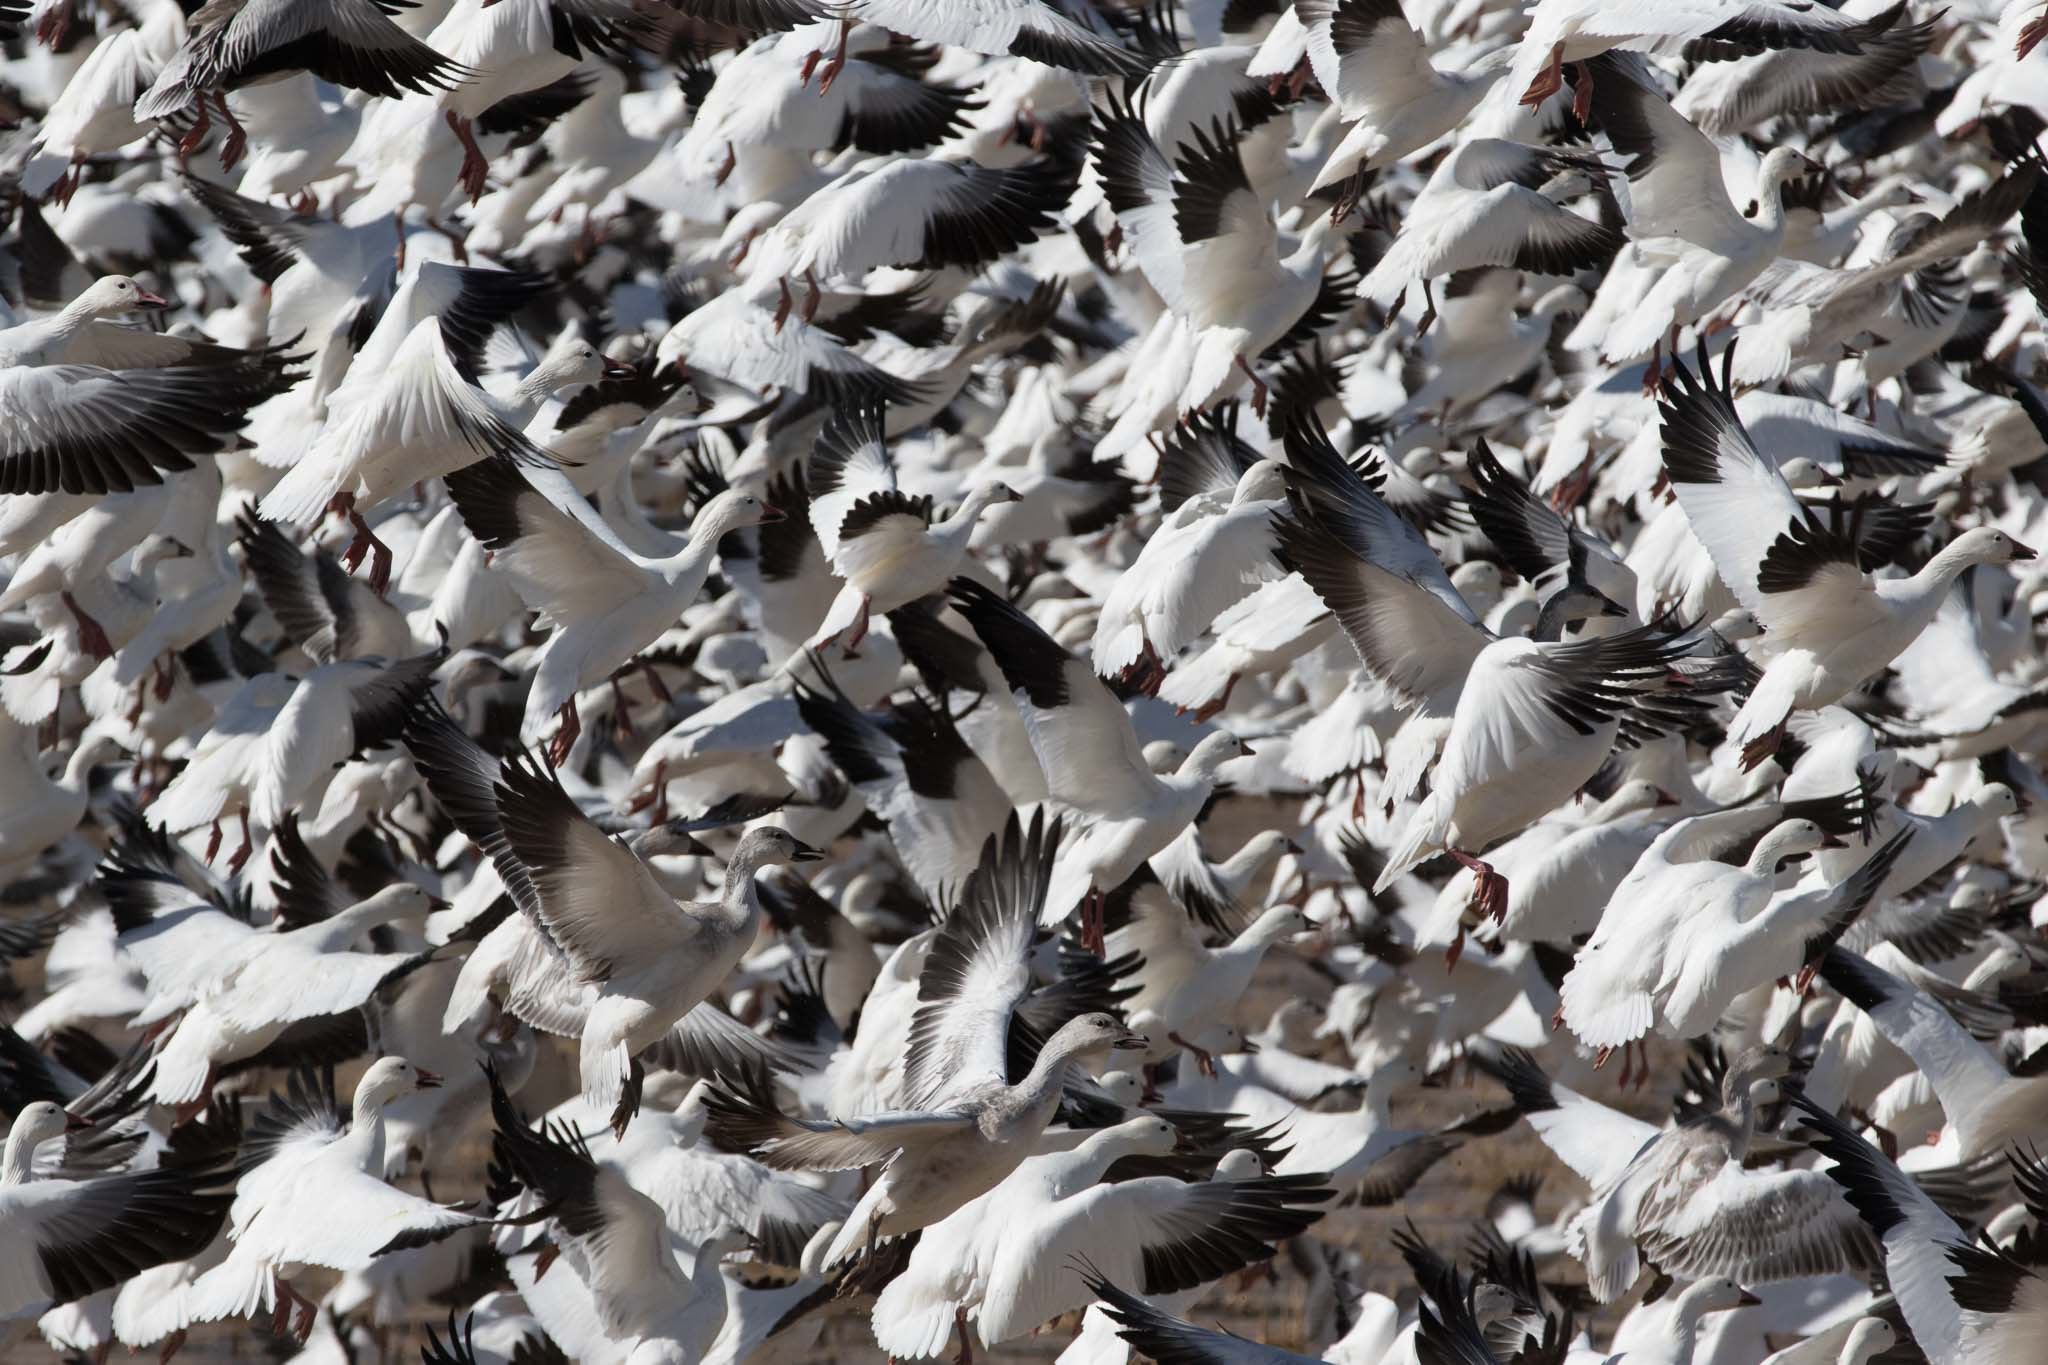 Snow Geese Taking Off, Bosque del Apache National Wildlife Refuge, San Antonio NM, November 23, 2014